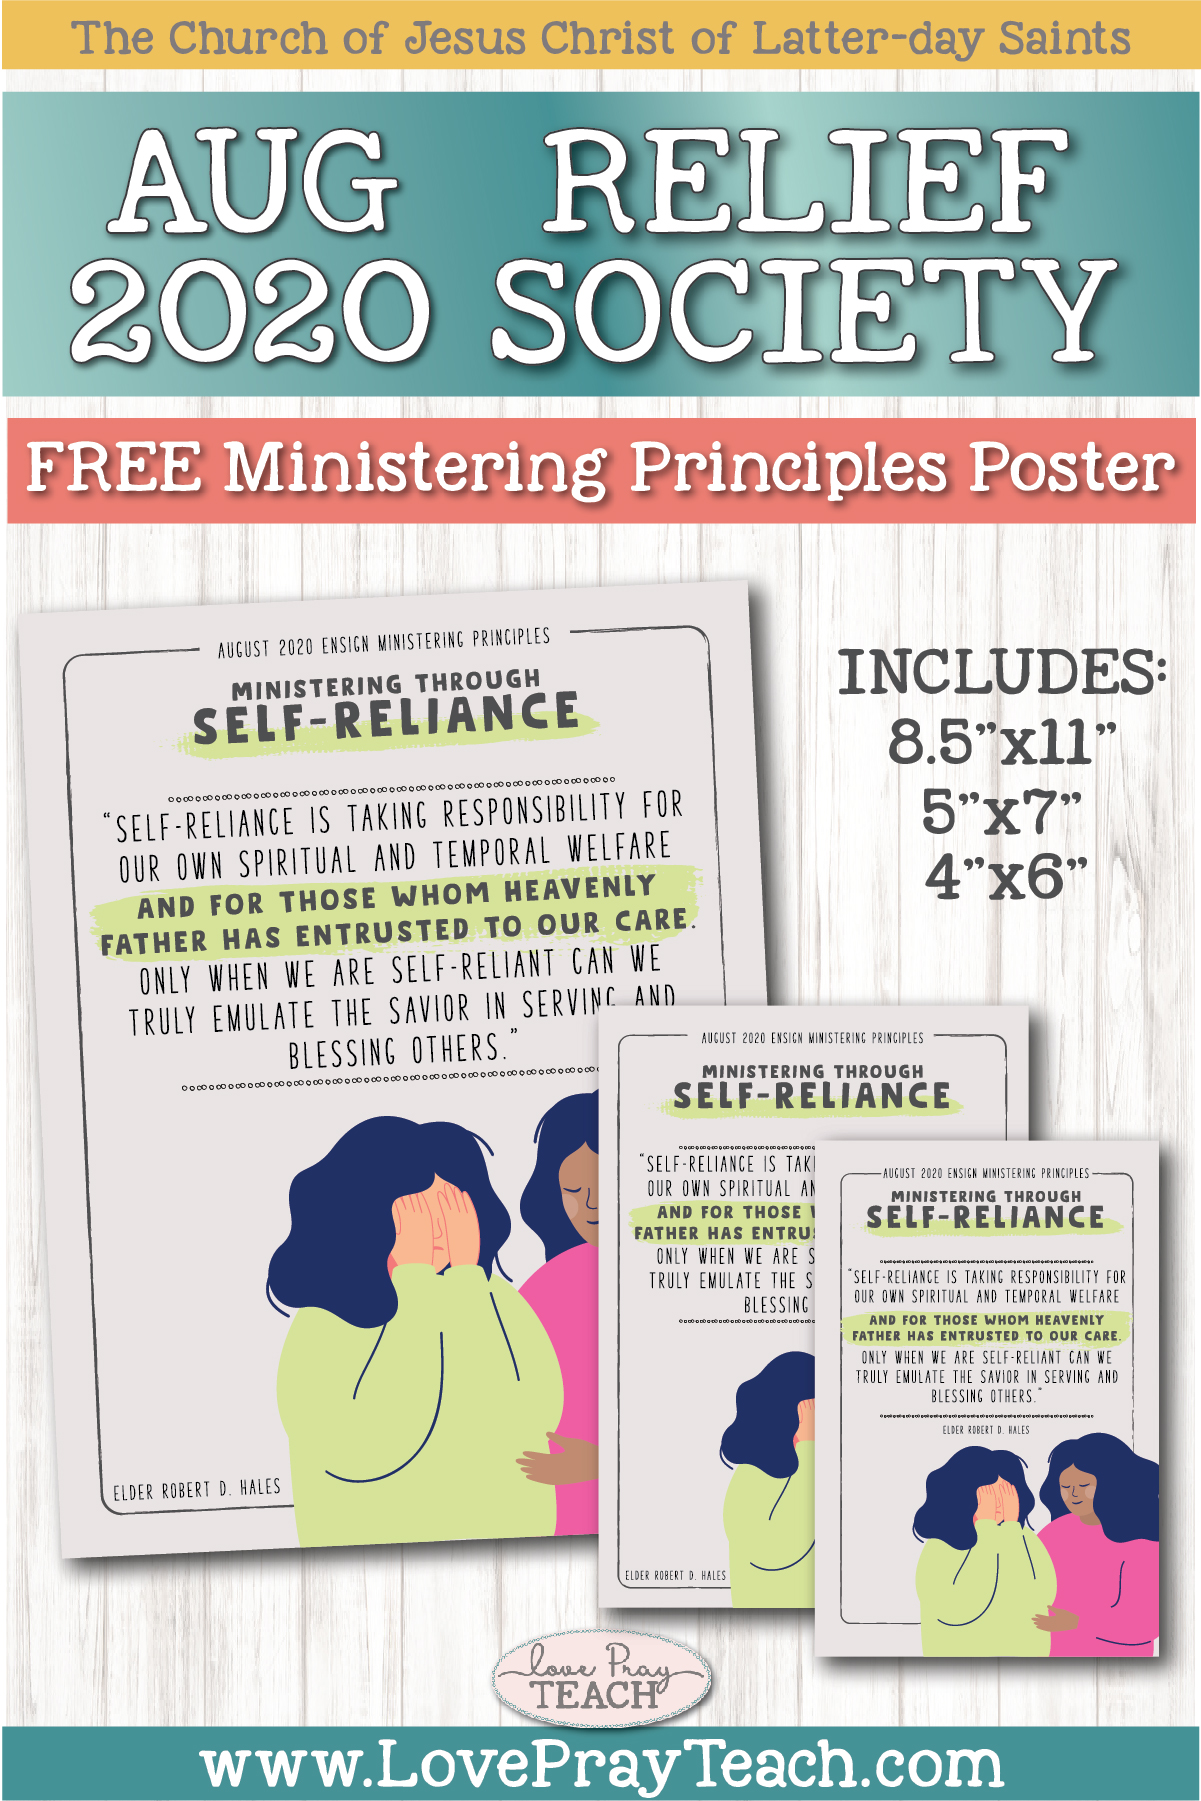 August 2020 Free Ministering Principles Poster and Handouts www.LovePrayTeach.com